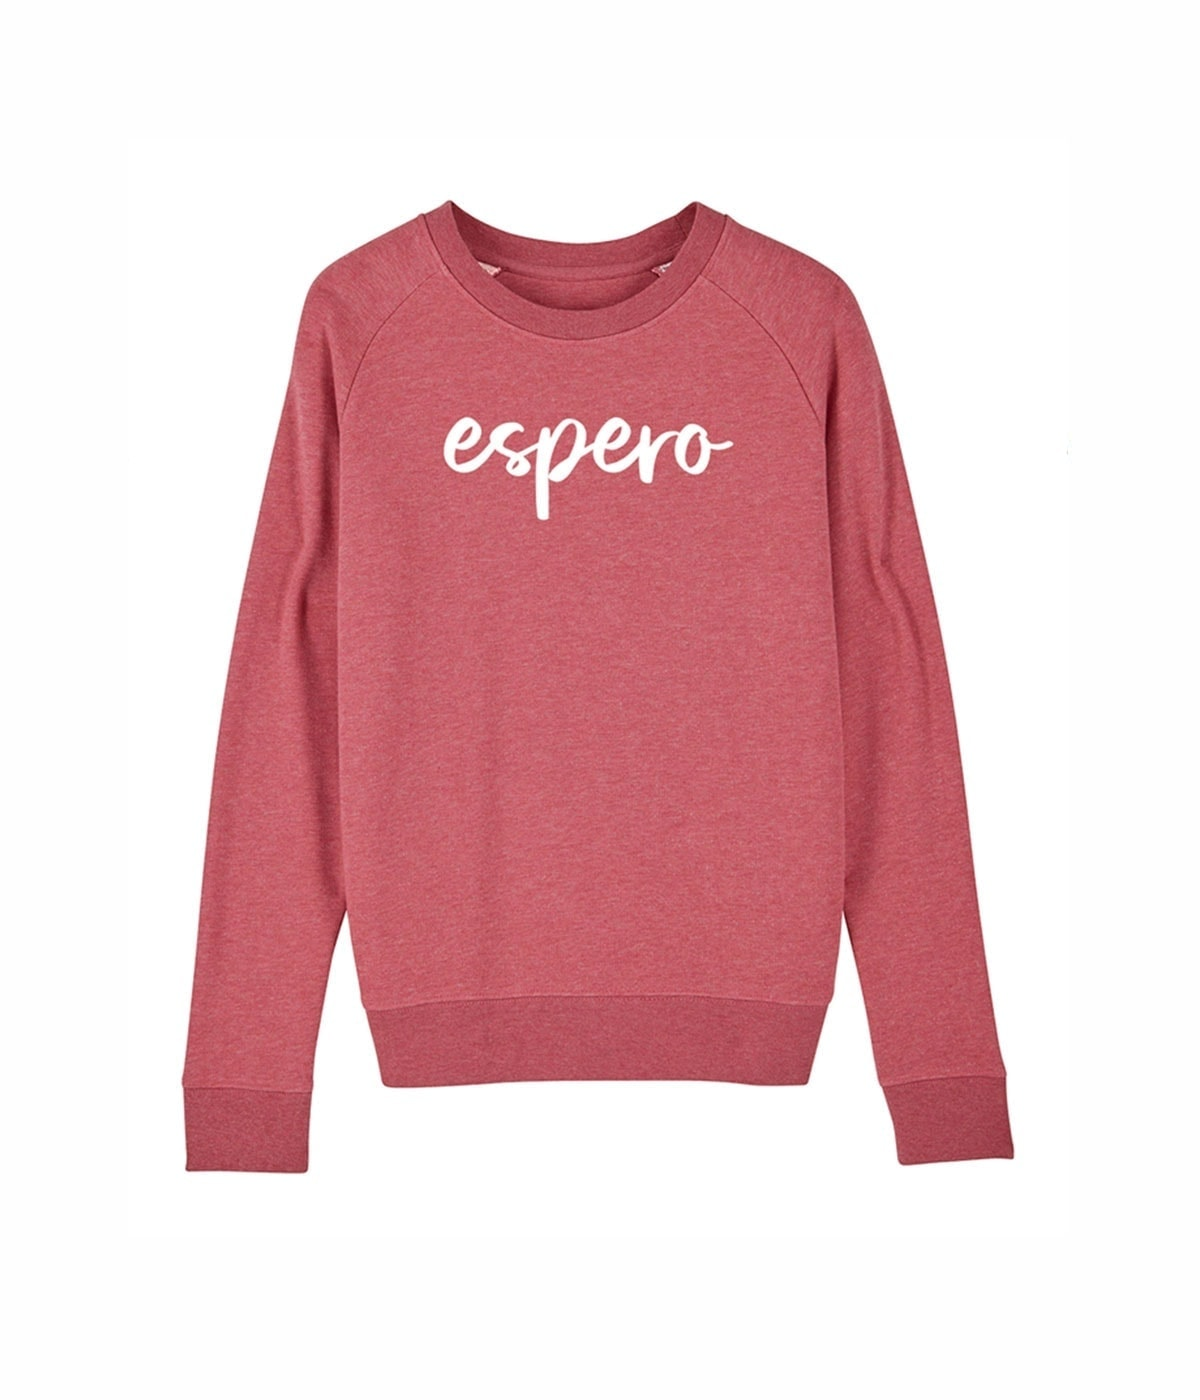 espero clothing sweater classic damen